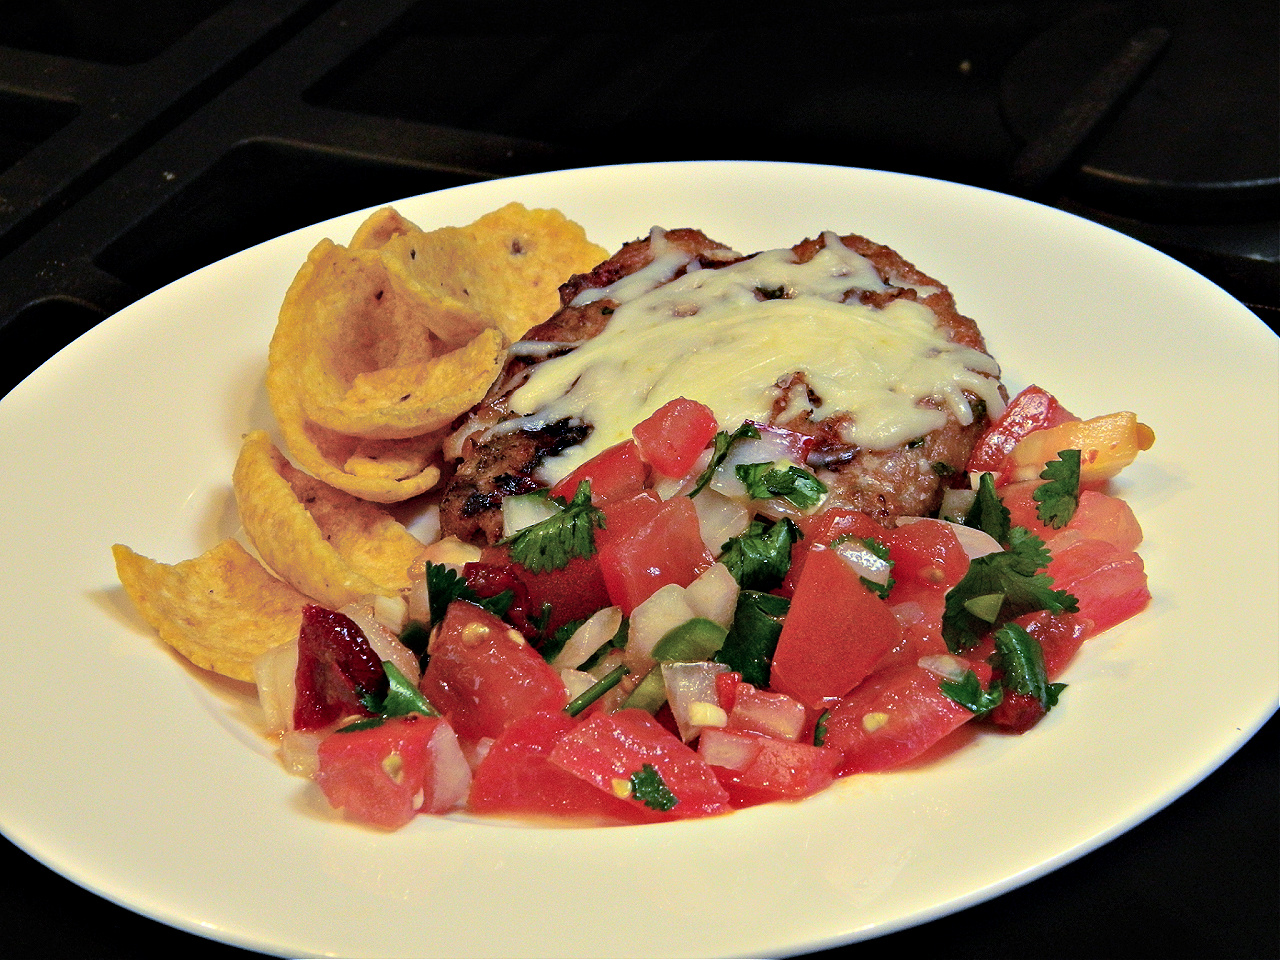 Mike's Chipotle Salsa